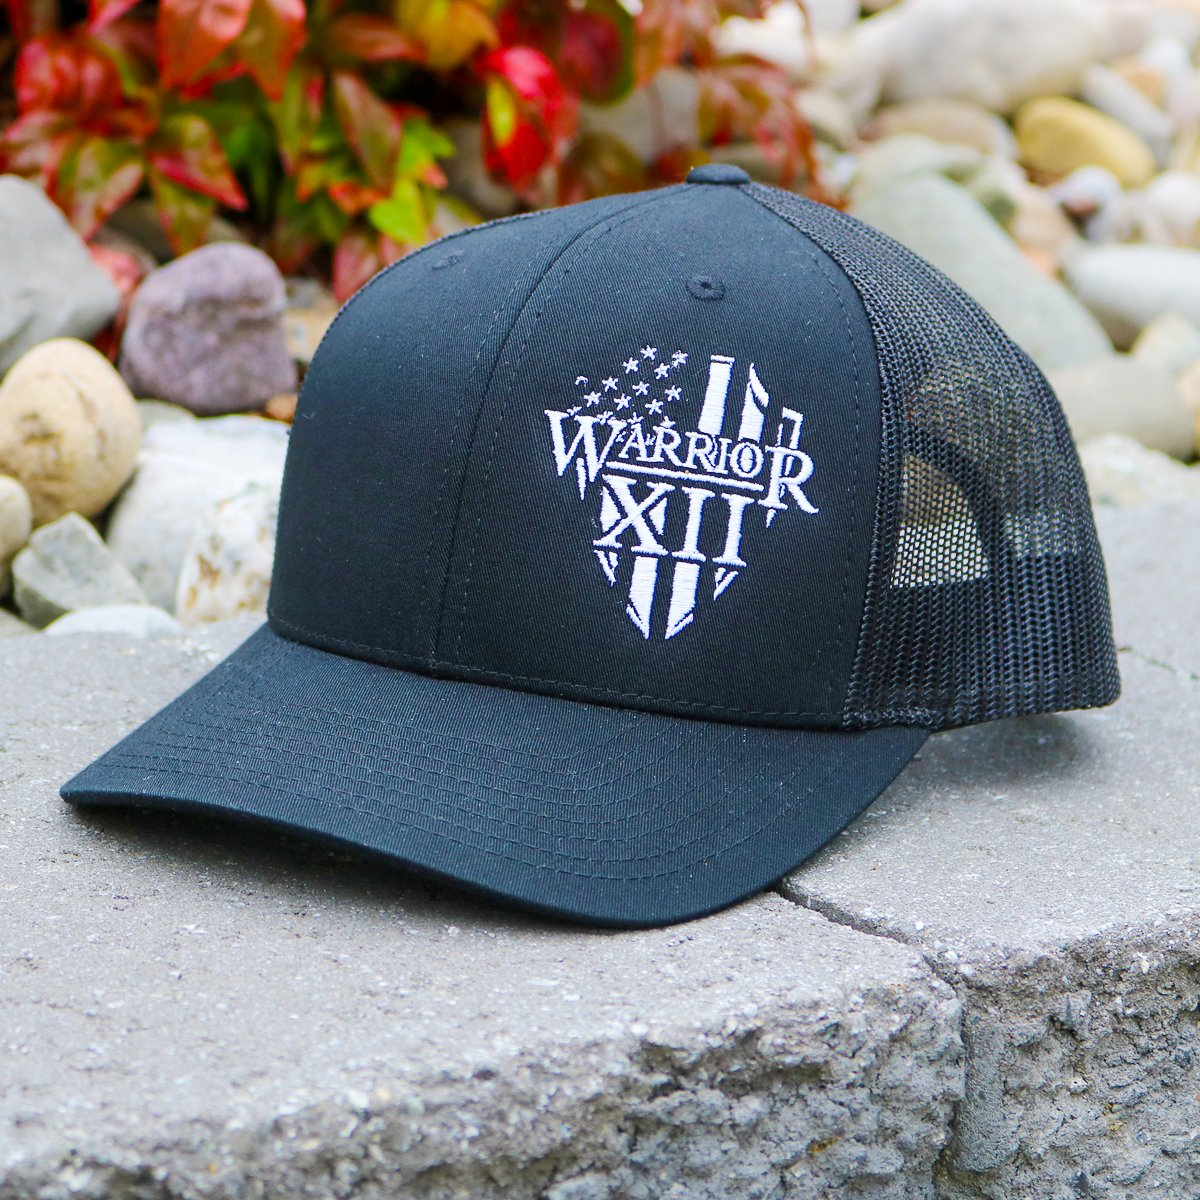 The Warrior Snapback Hat Black